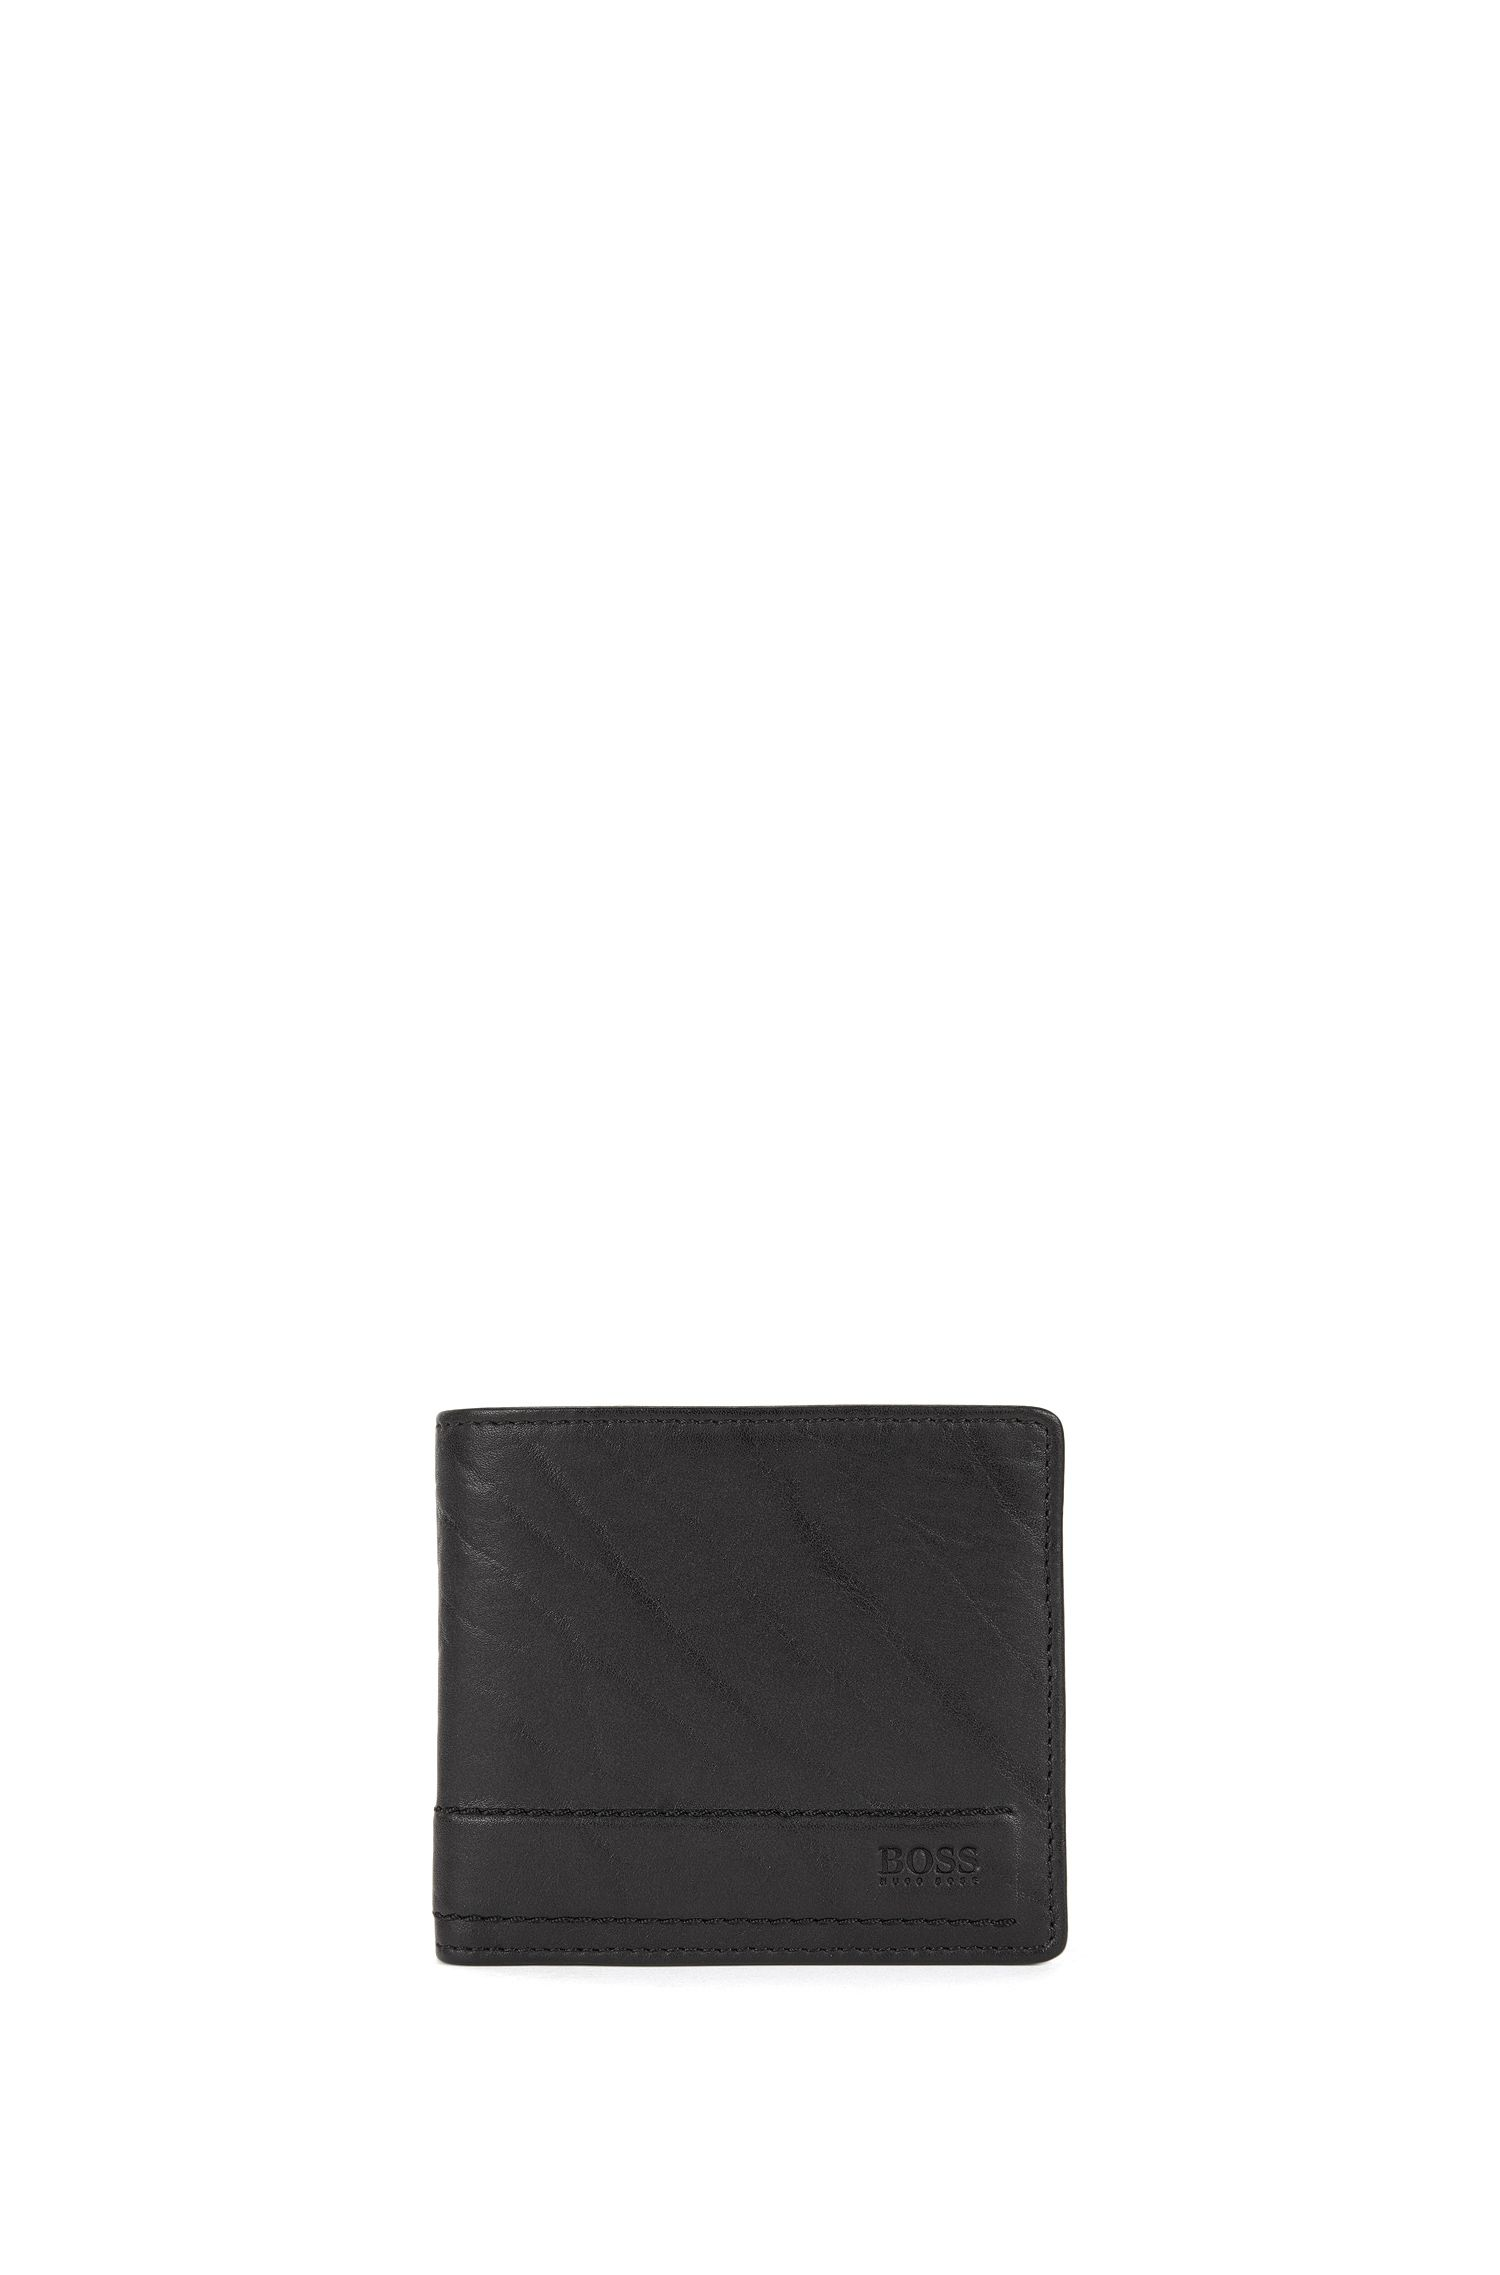 Bi-fold wallet in rich leather